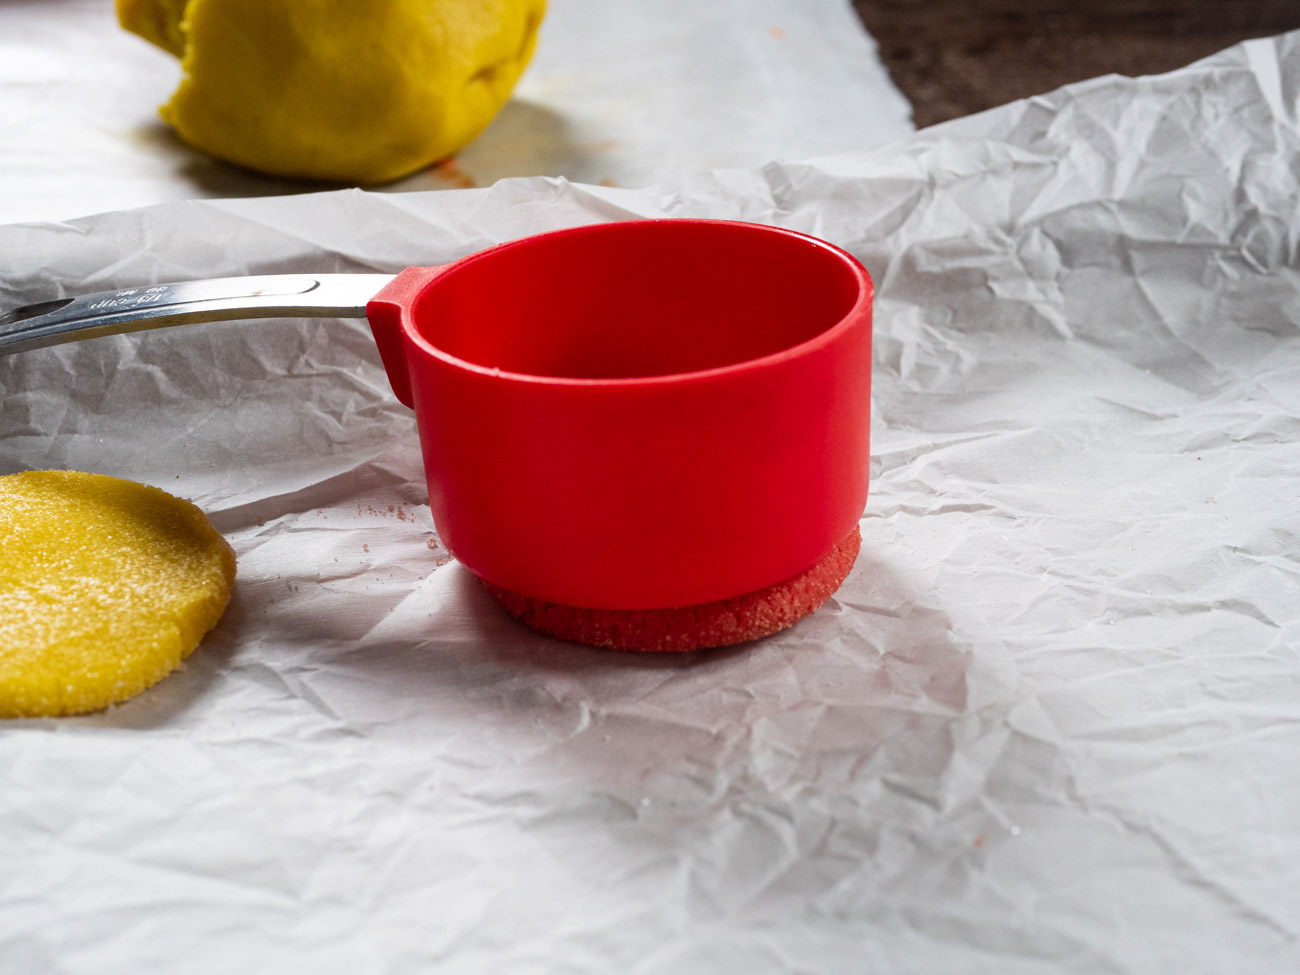 Pour remaining Jello into 4 small bowls. Roll dough into 1-inch balls and dip in coordinating Jello mix powder. Flatten each cookie with the bottom of a mug or cup, but don't press too hard or else the edges will become cracked.